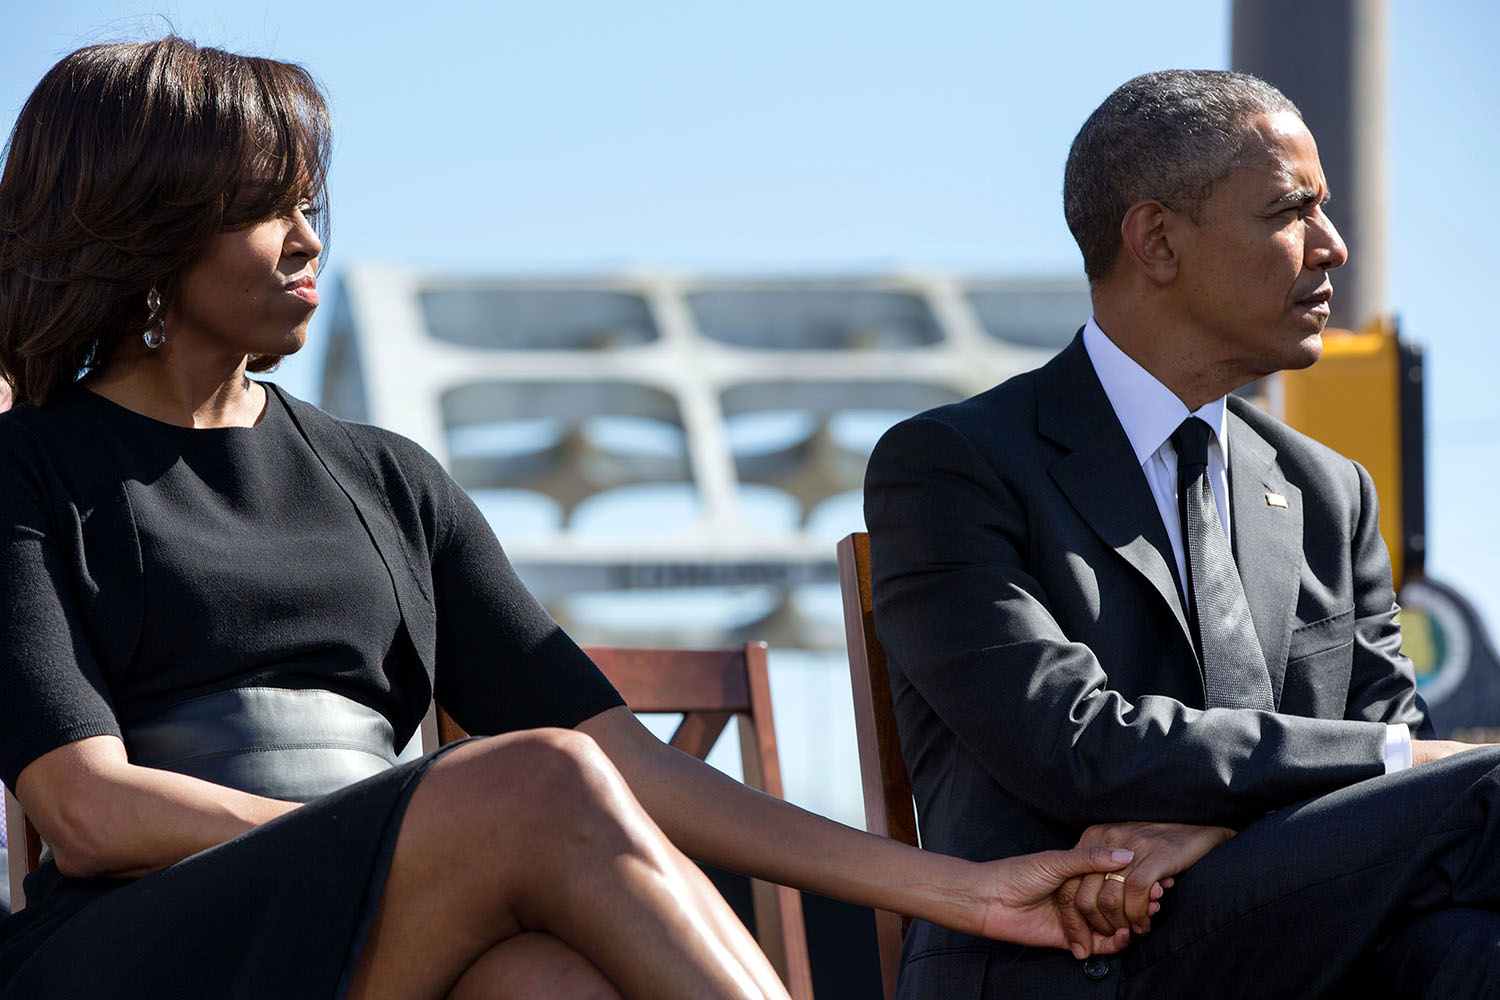 Barack_and_Michelle_Obama_holding_hands_at_the_event_to_commemorate_the_50th_Anniversary_of_Bloody_Sunday_and_the_Selma_to_Montgomery_civil_rights_marches.jpg